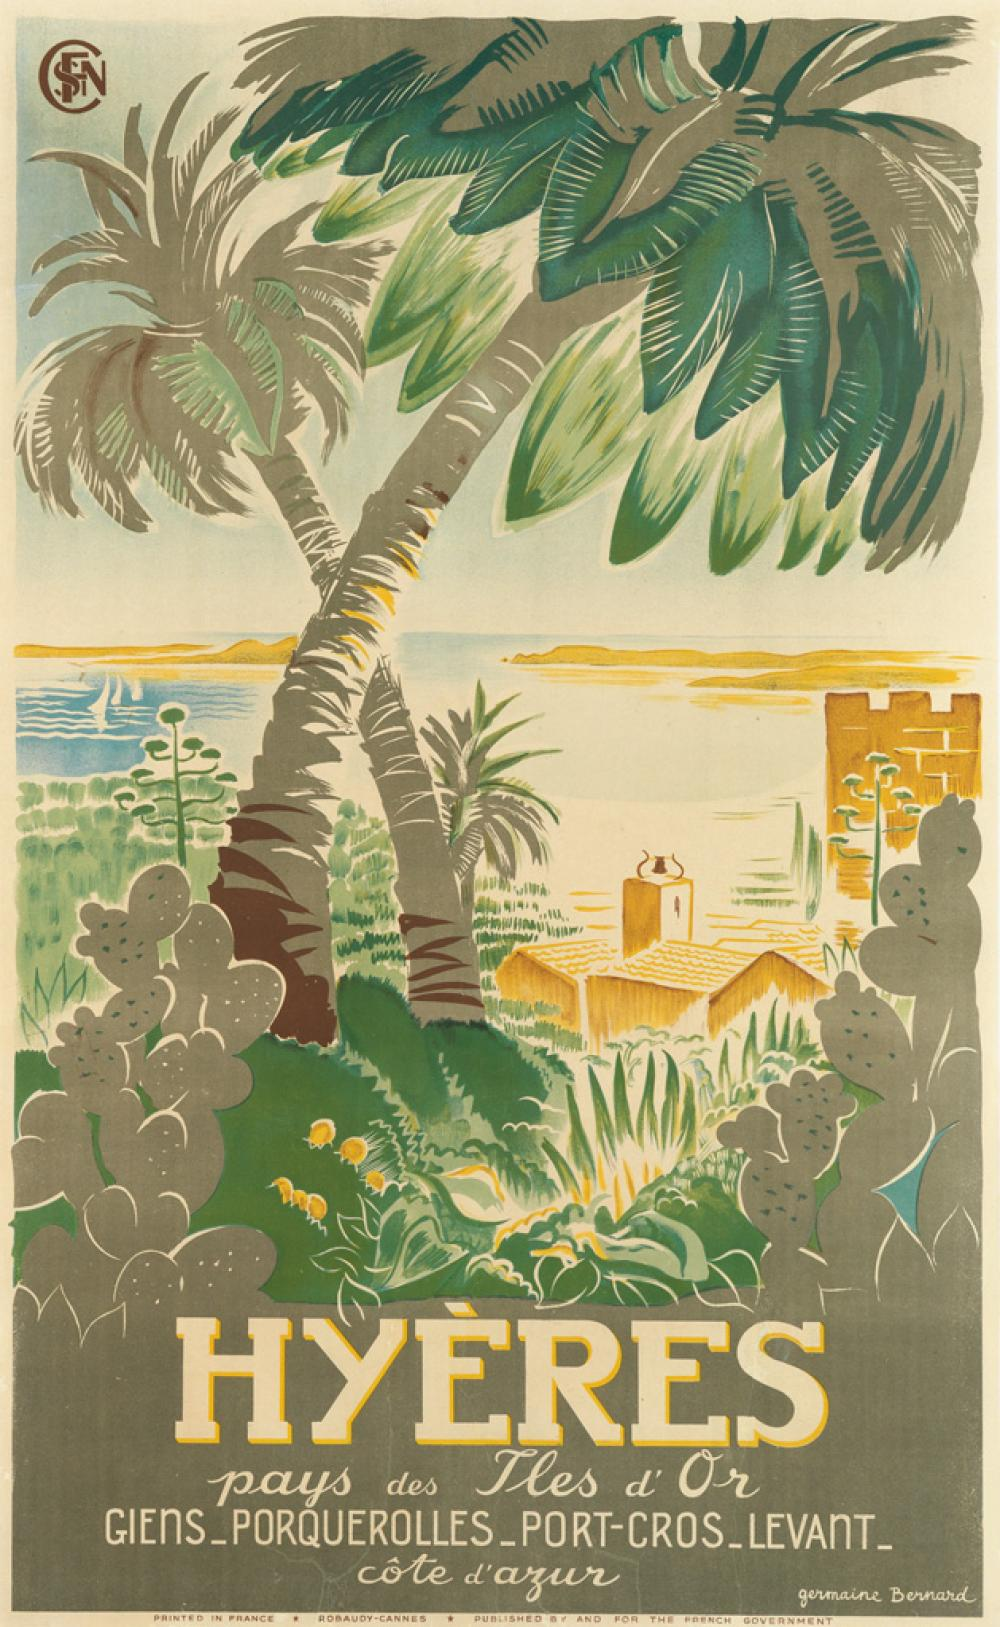 GERMAINE BERNARD (DATES UNKNOWN). HYÈRES. Circa 1925. 38x23 inches, 98x60 cm. Robaudy, Cannes.